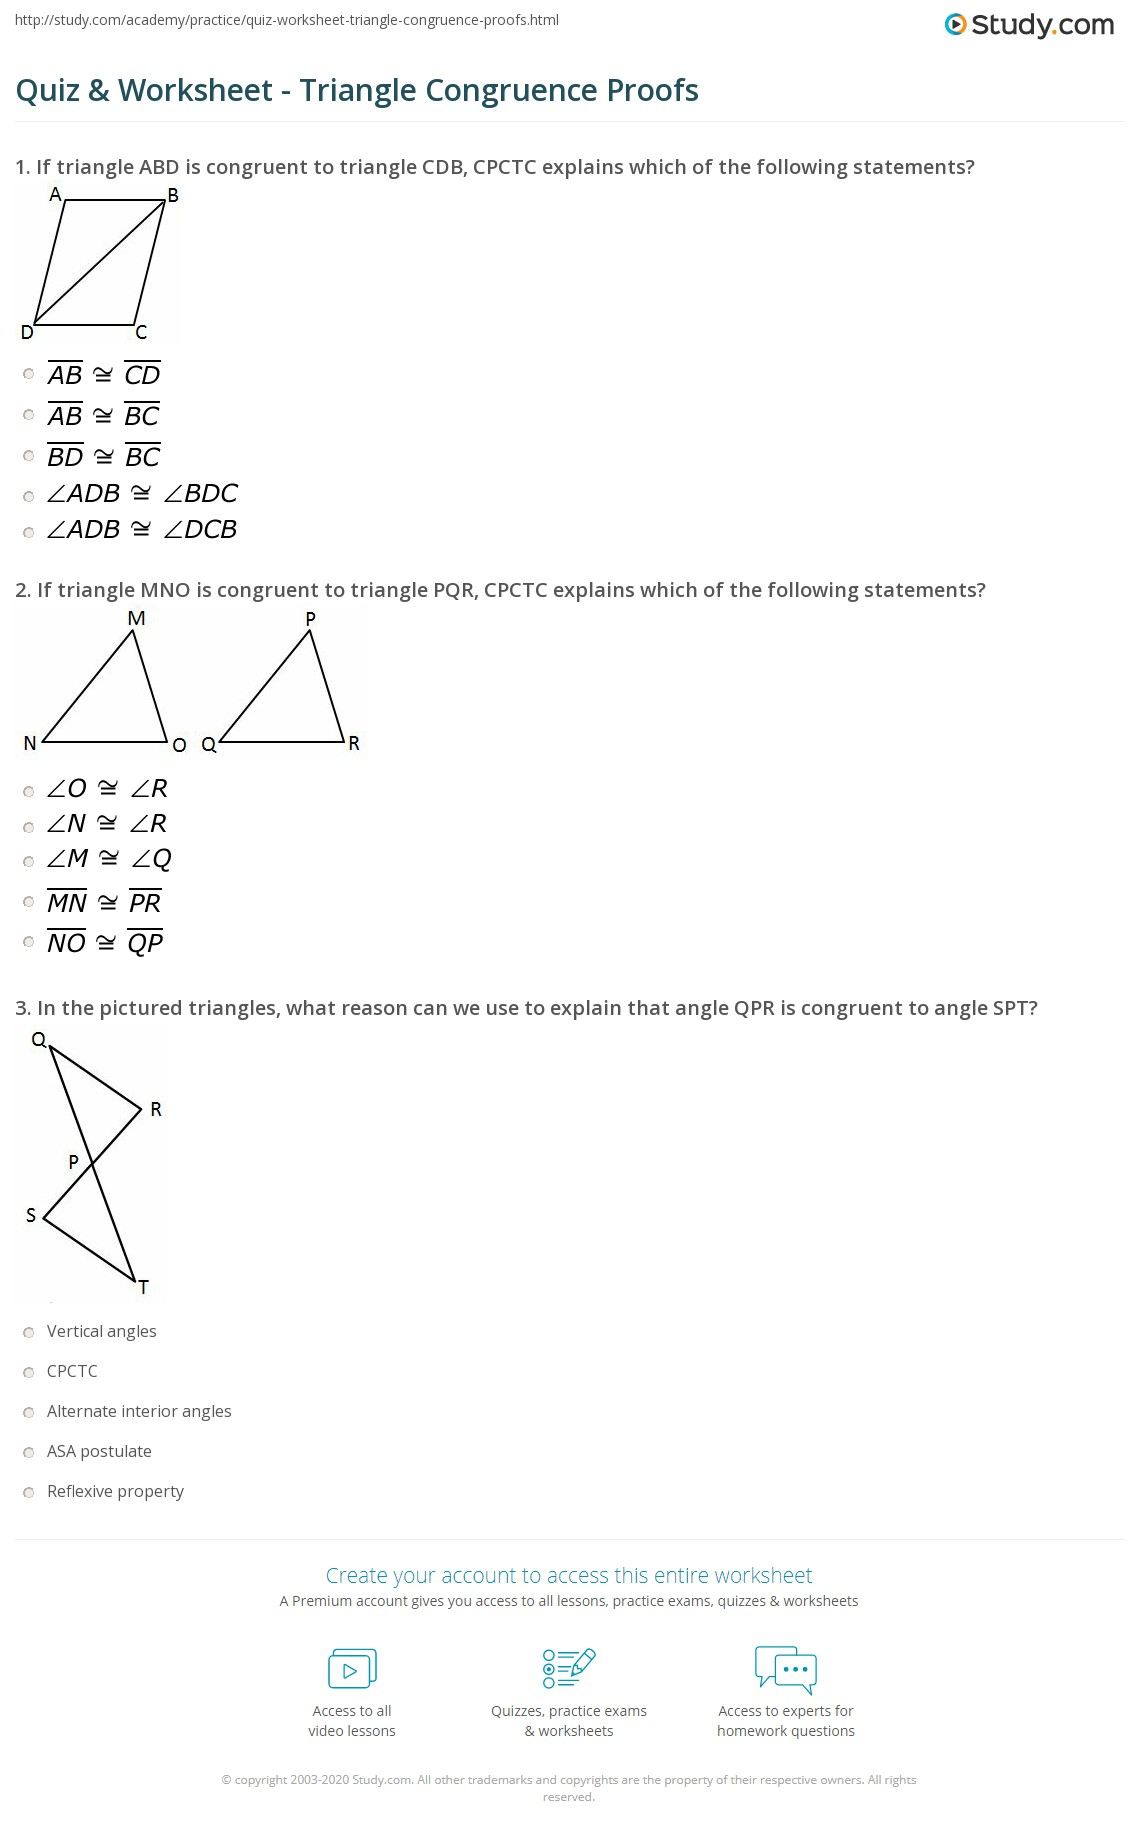 Worksheets Triangle Congruence Worksheet Answers quiz worksheet triangle congruence proofs study com print corresponding parts of congruent triangles worksheet